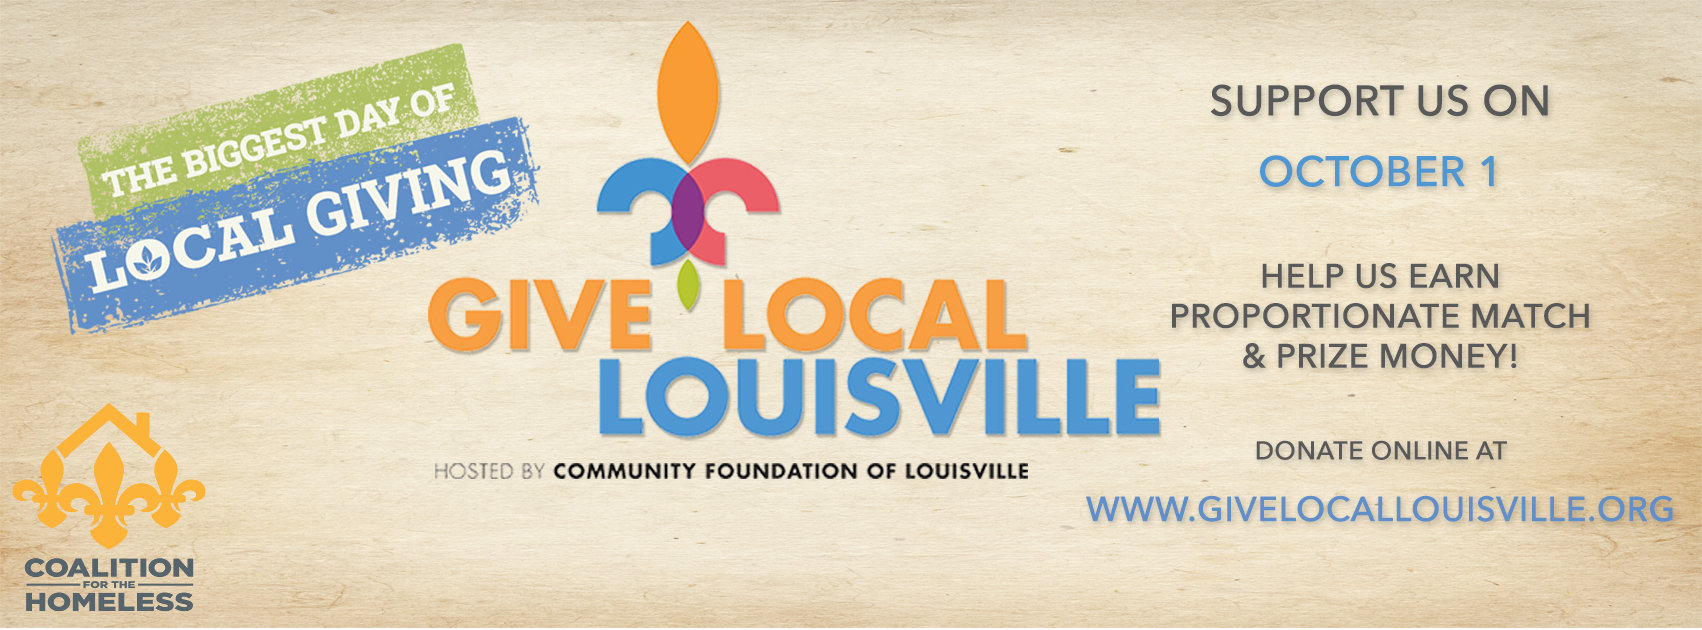 Give Local Louisville with logo